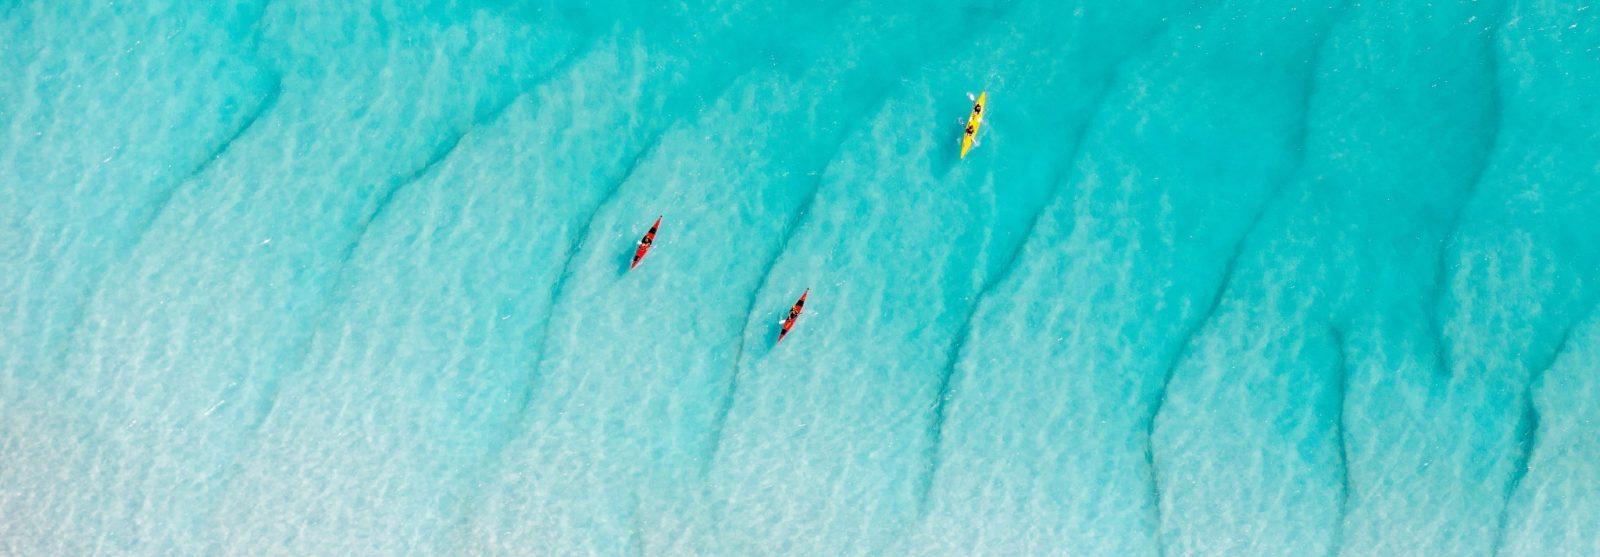 Kayaking at Whitehaven Beach, Whitsundays Islands, QLD